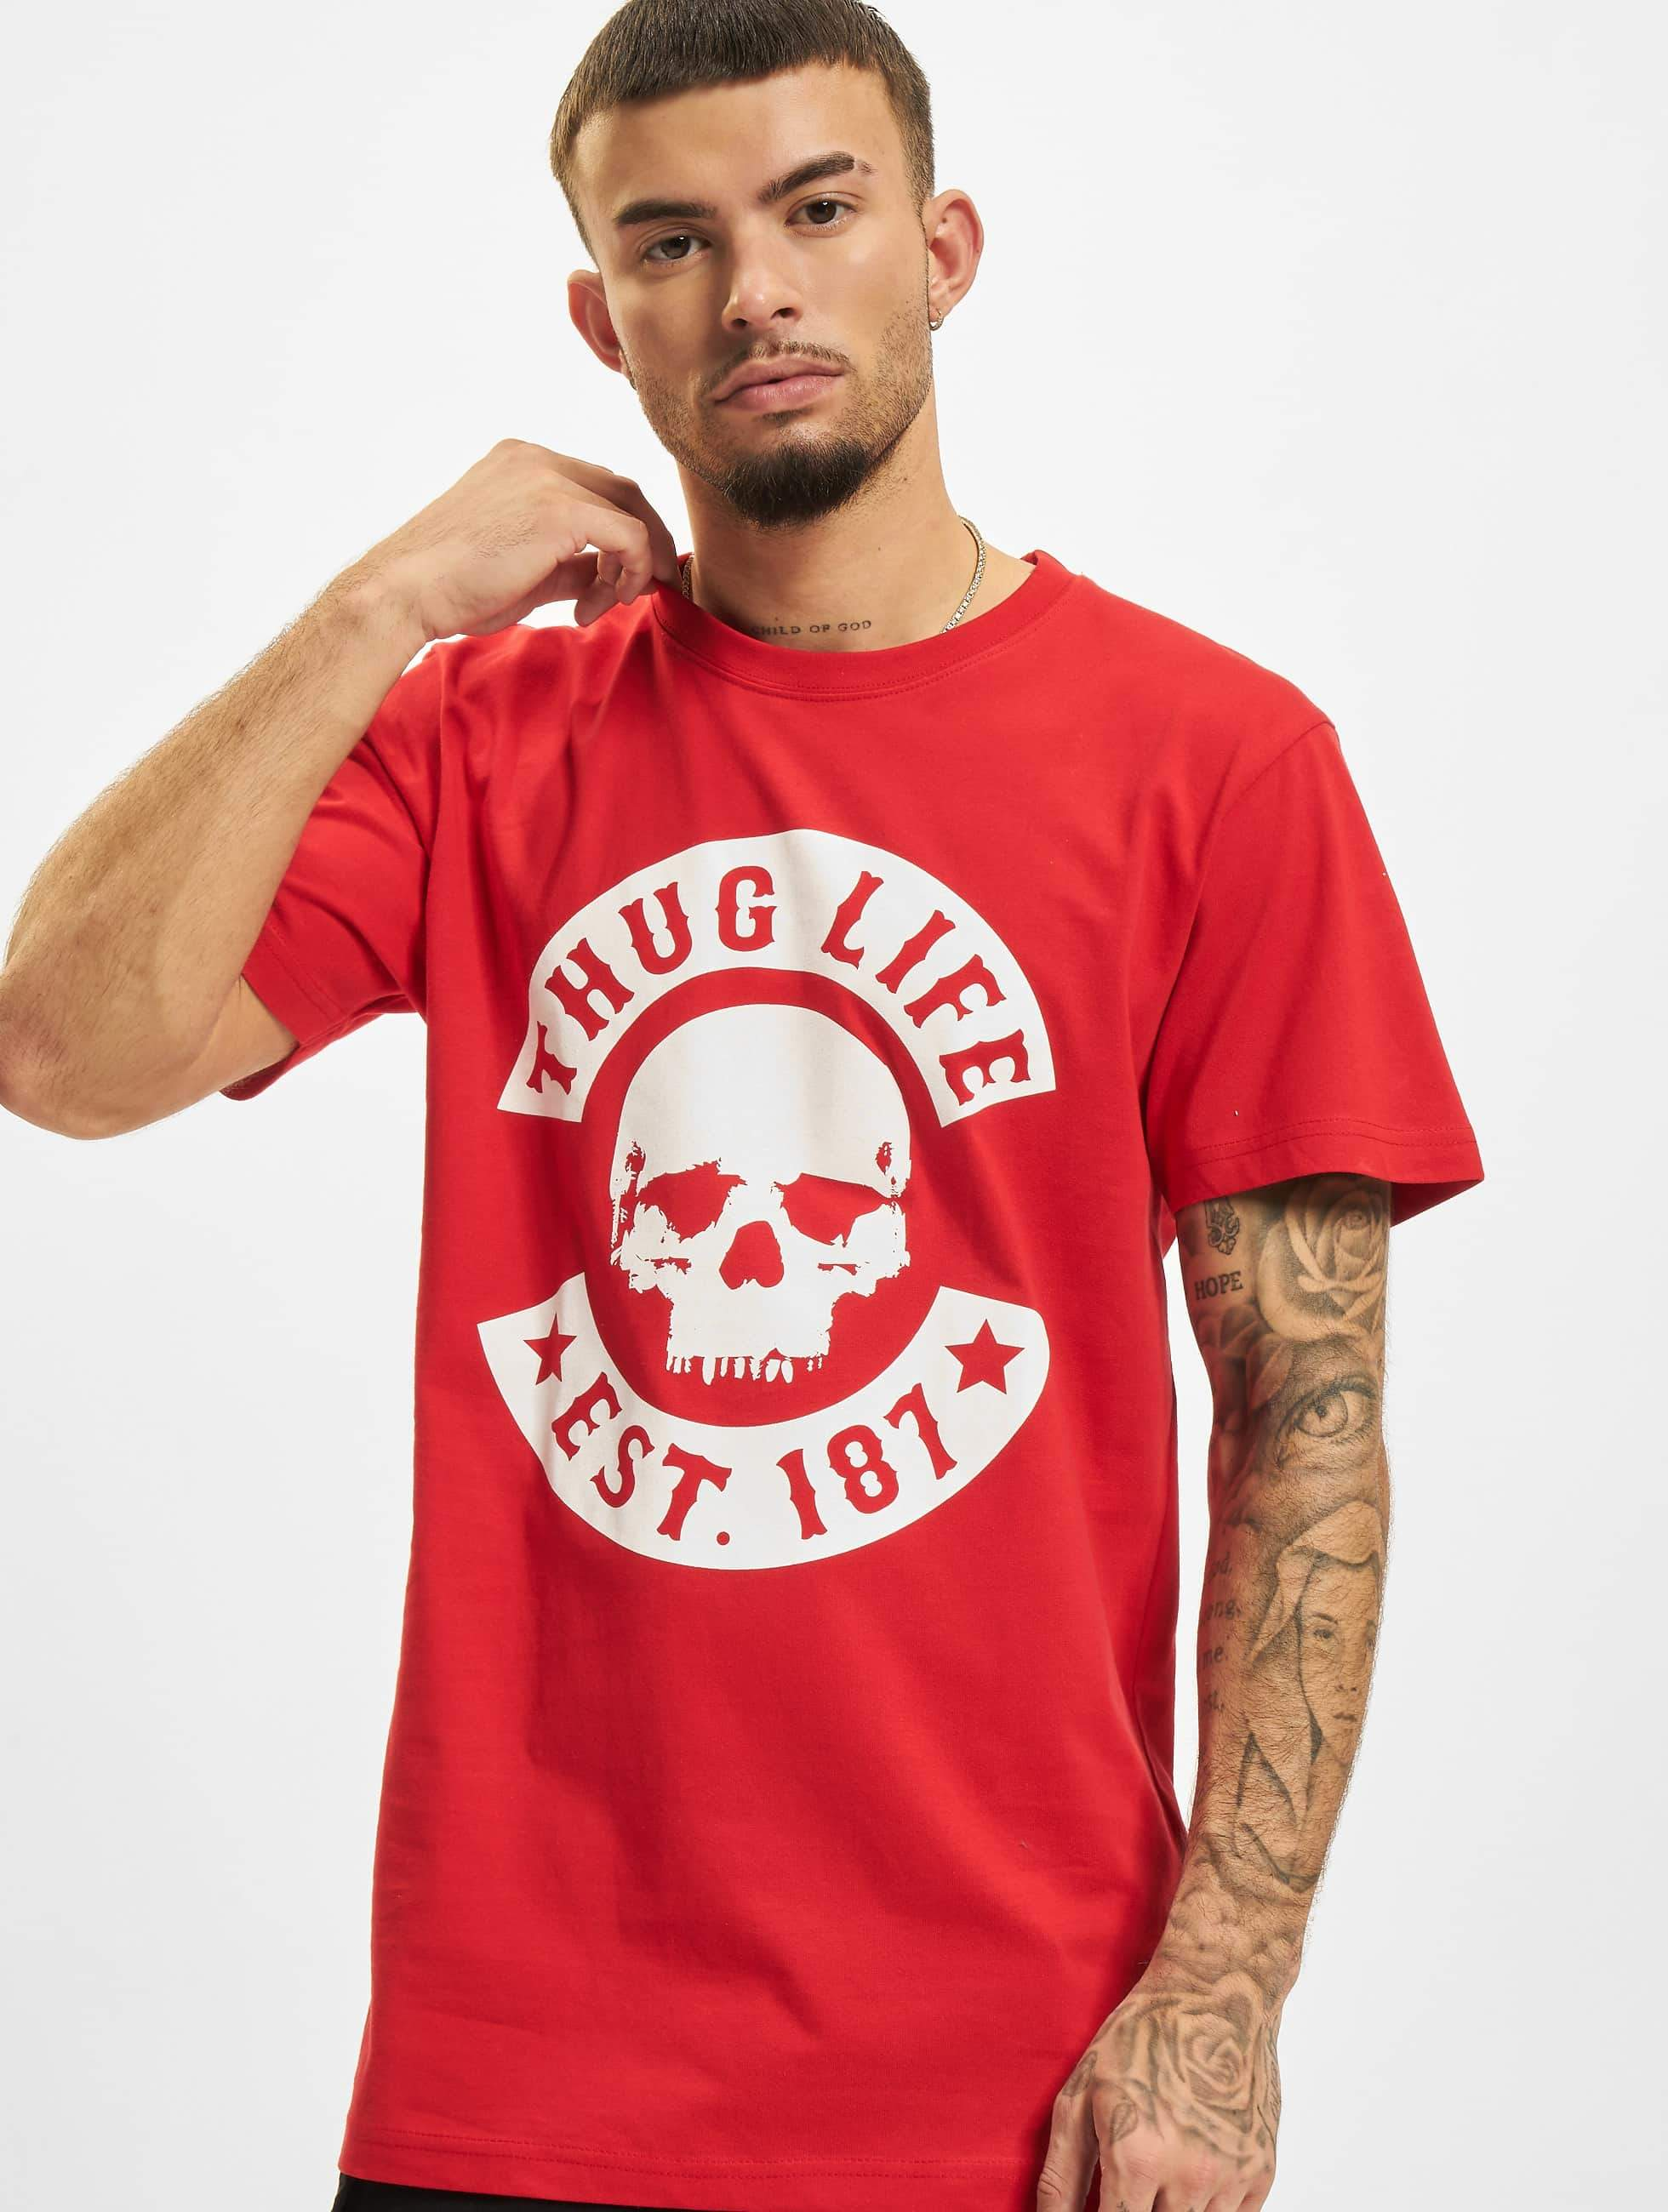 Thug Life / T-Shirt B.Skull in red 4XL